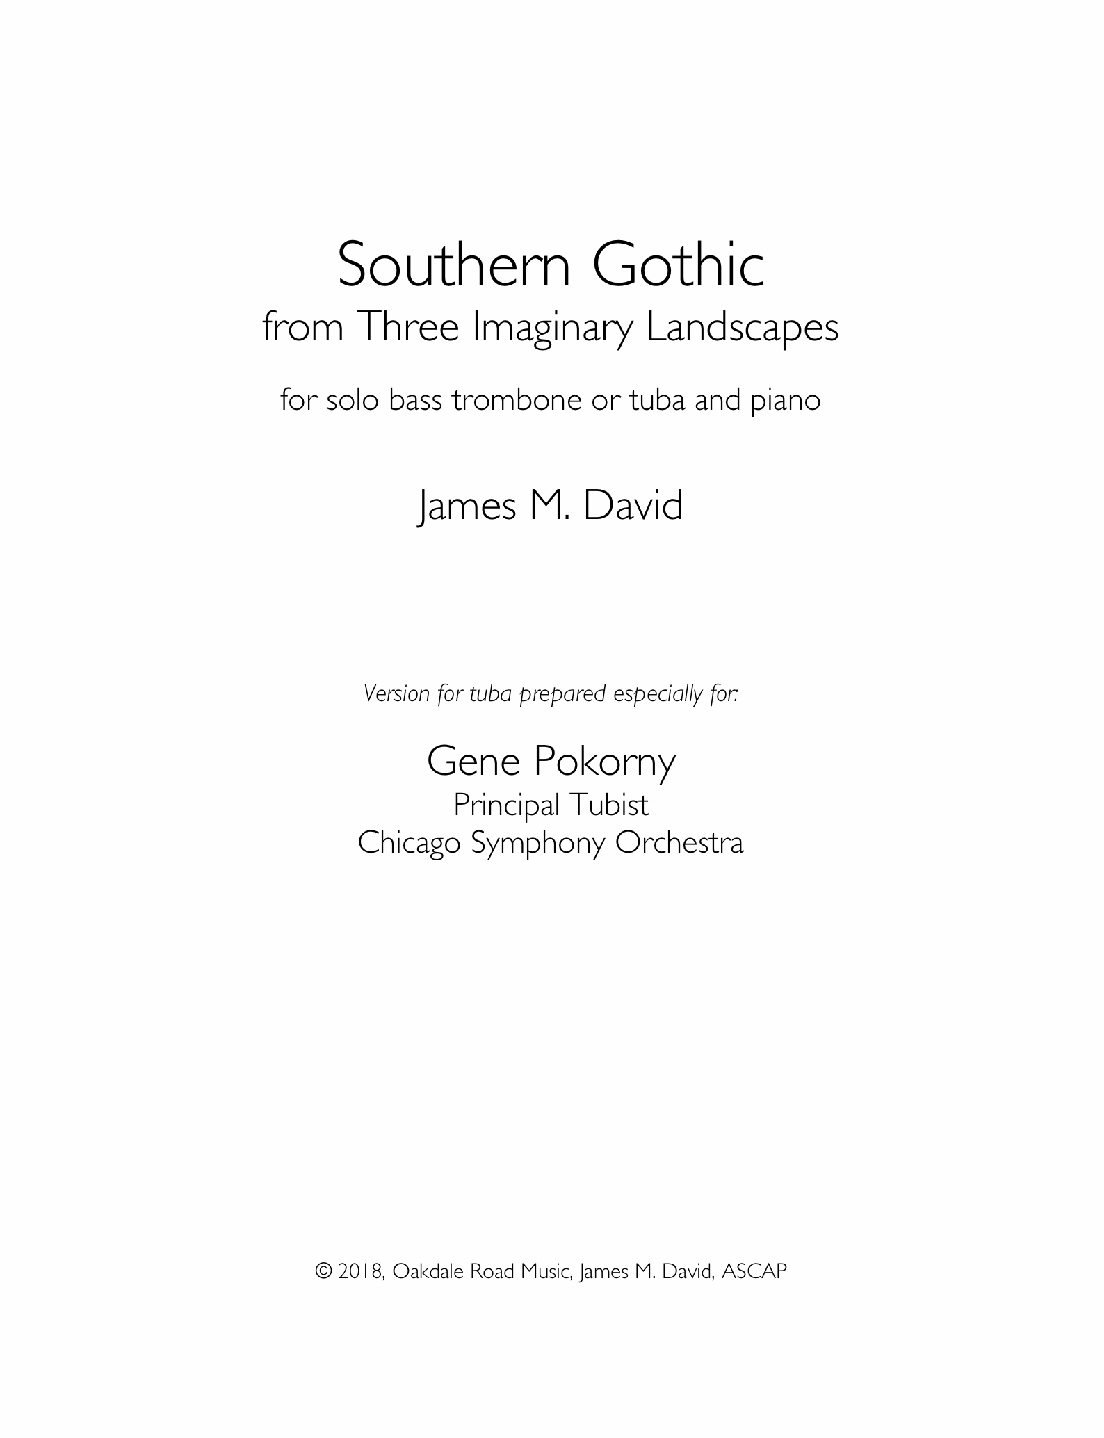 Southern Gothic by James David